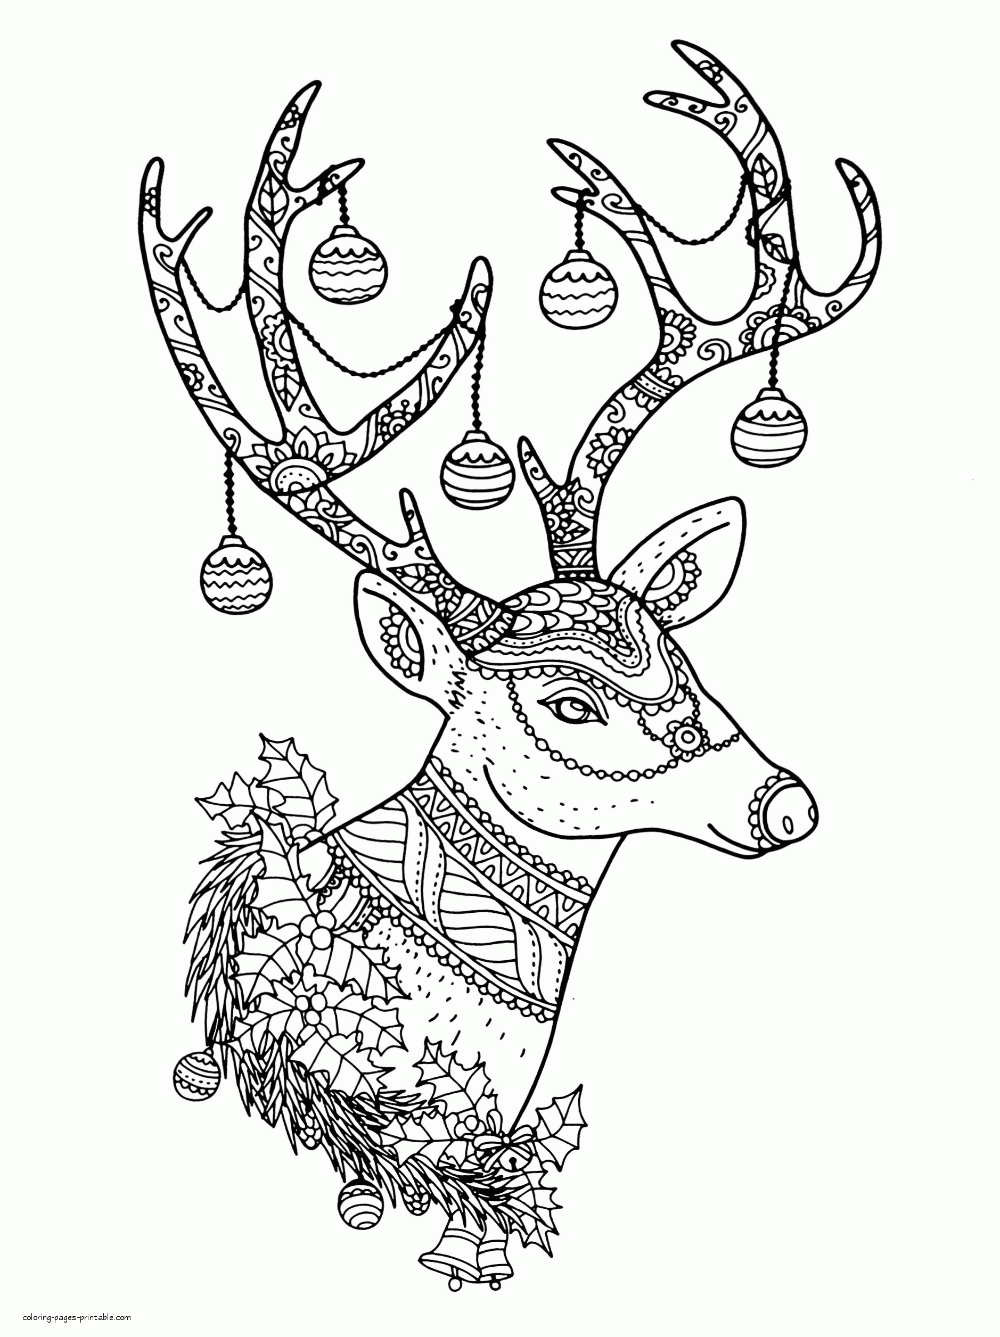 Free Christmas Reindeer Colouring Pages For Adults Animal Coloring Pages Christmas Coloring Books Colouring Pages